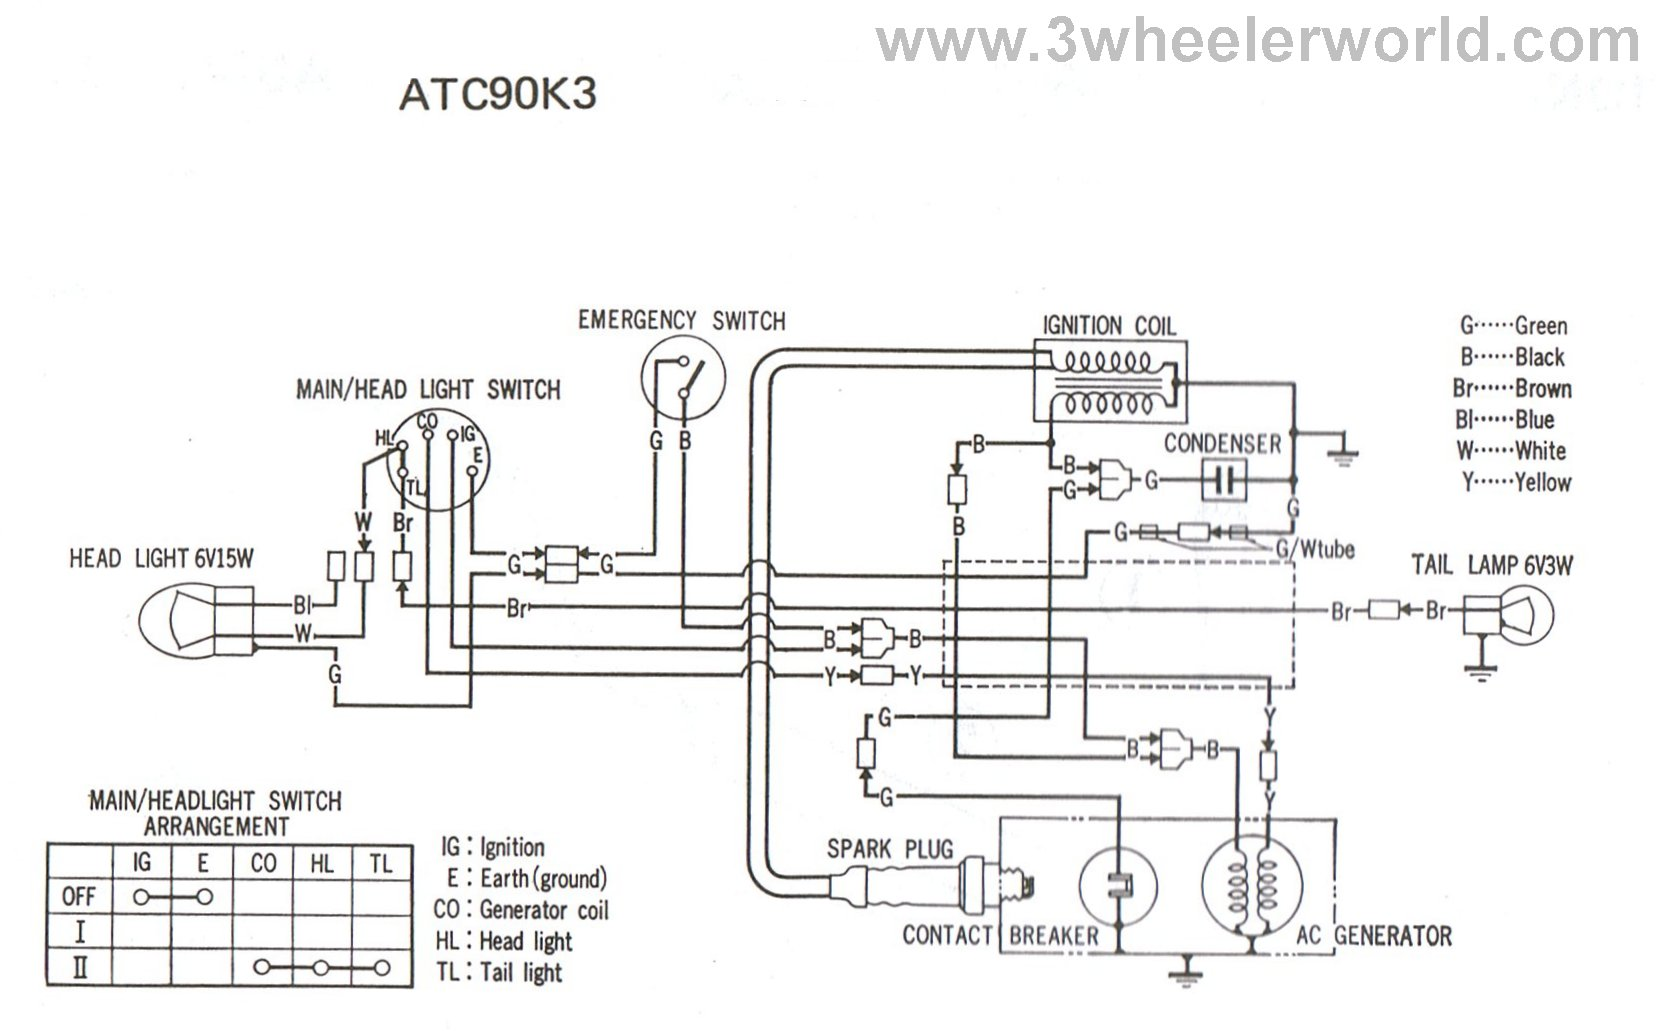 ATC90K3HM 3 wheeler world tech help honda wiring diagrams  at honlapkeszites.co